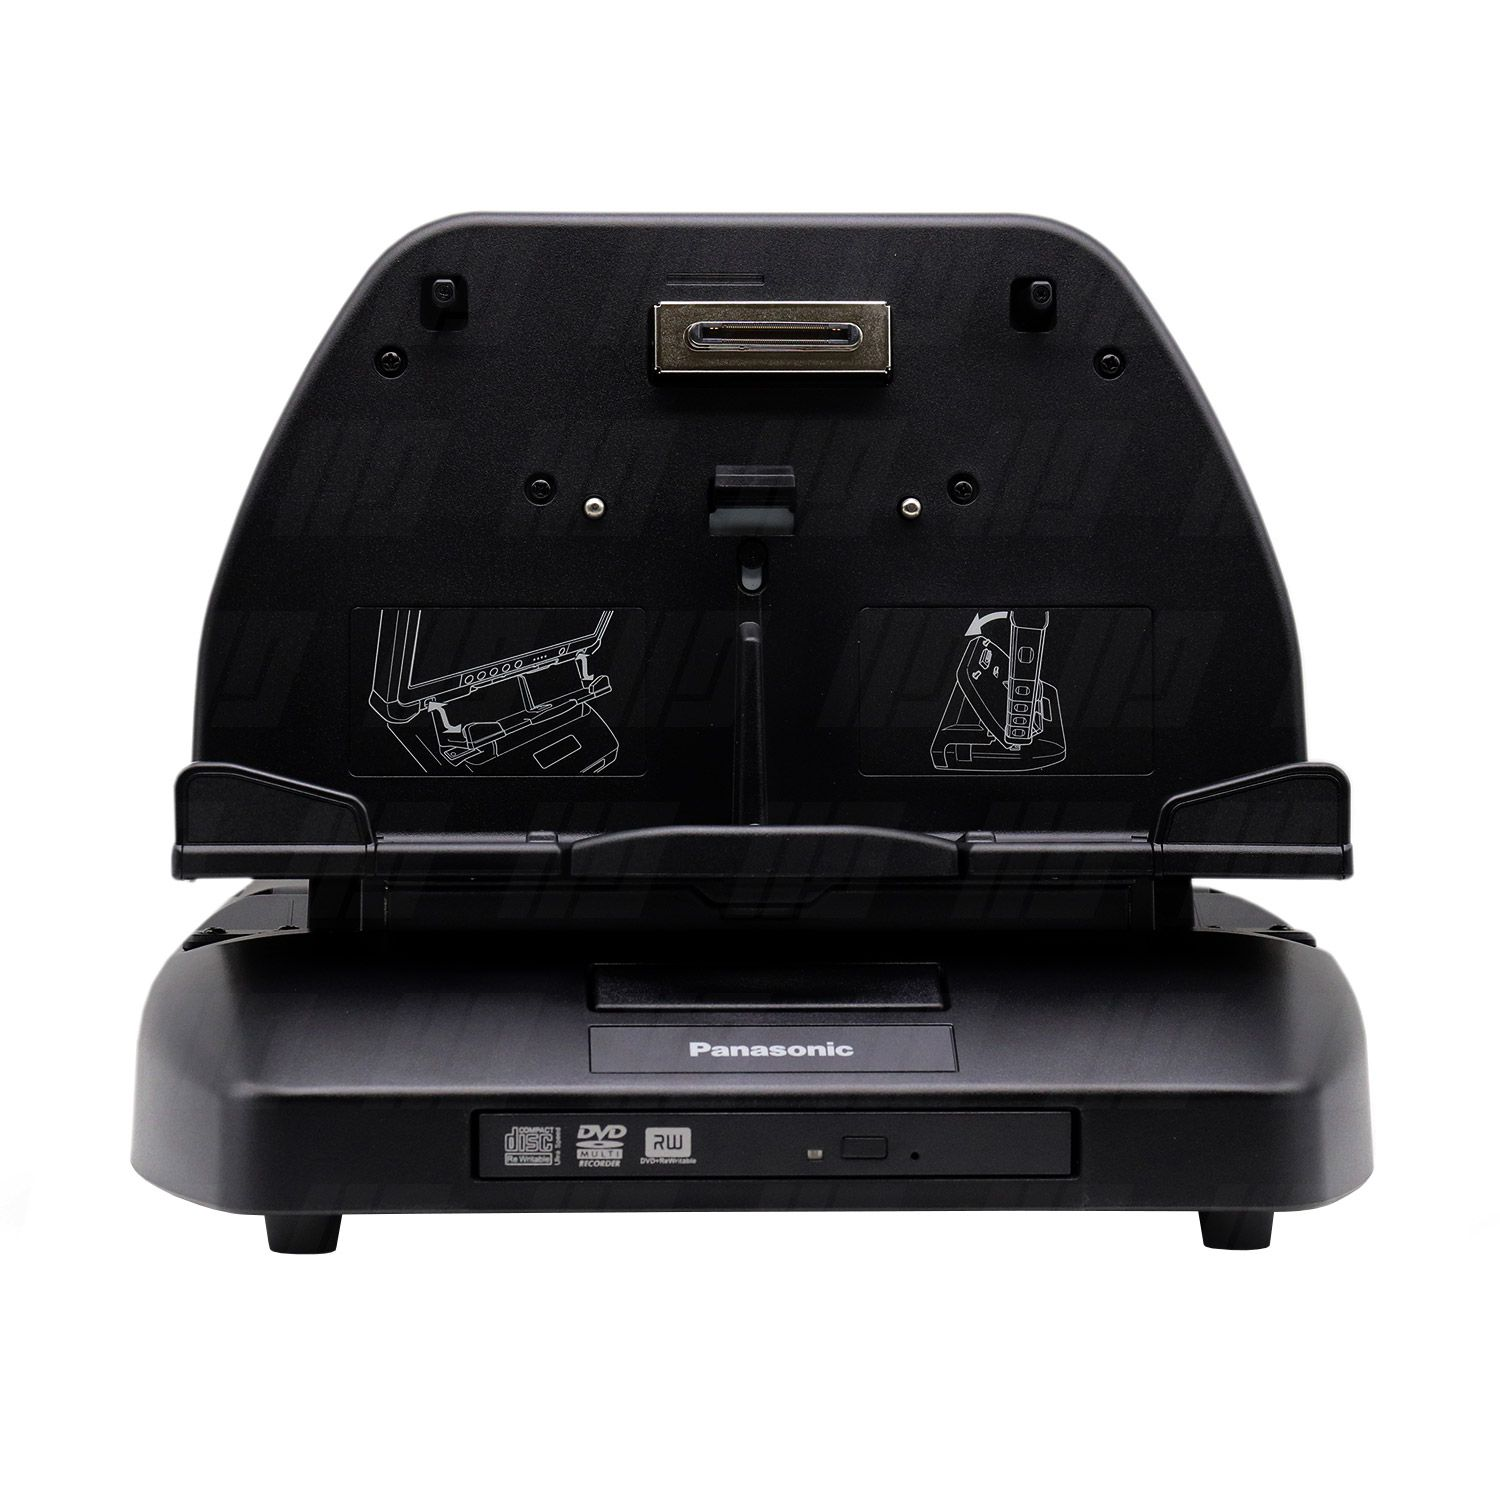 Panasonic Toughbook CF-D1 Docking Station Cradle With DVD